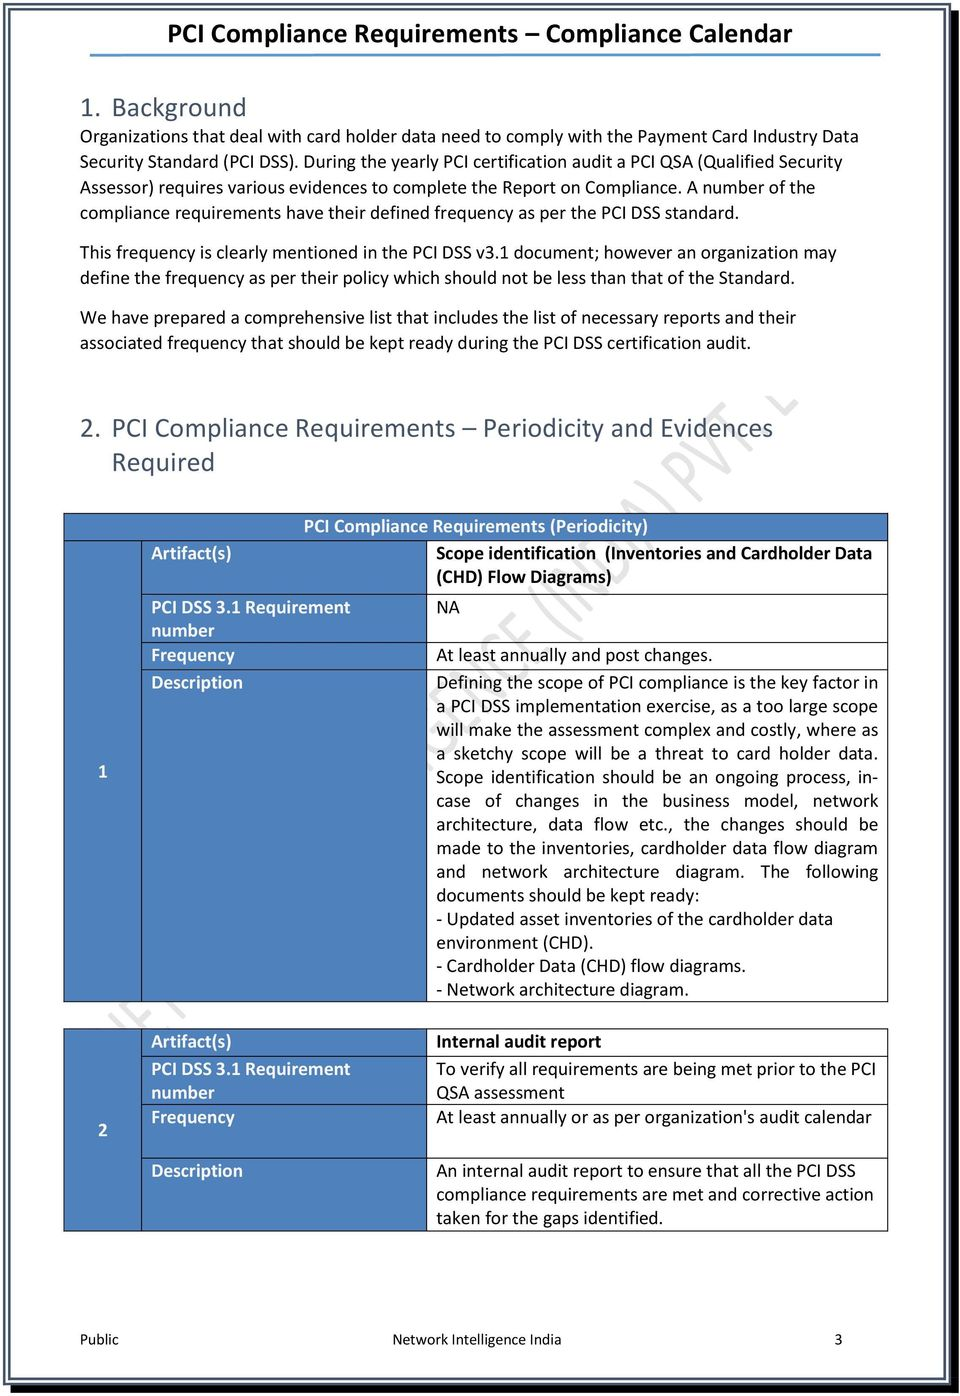 A of the compliance requirements have their defined frequency as per the PCI DSS standard. This frequency is clearly mentioned in the PCI DSS v3.